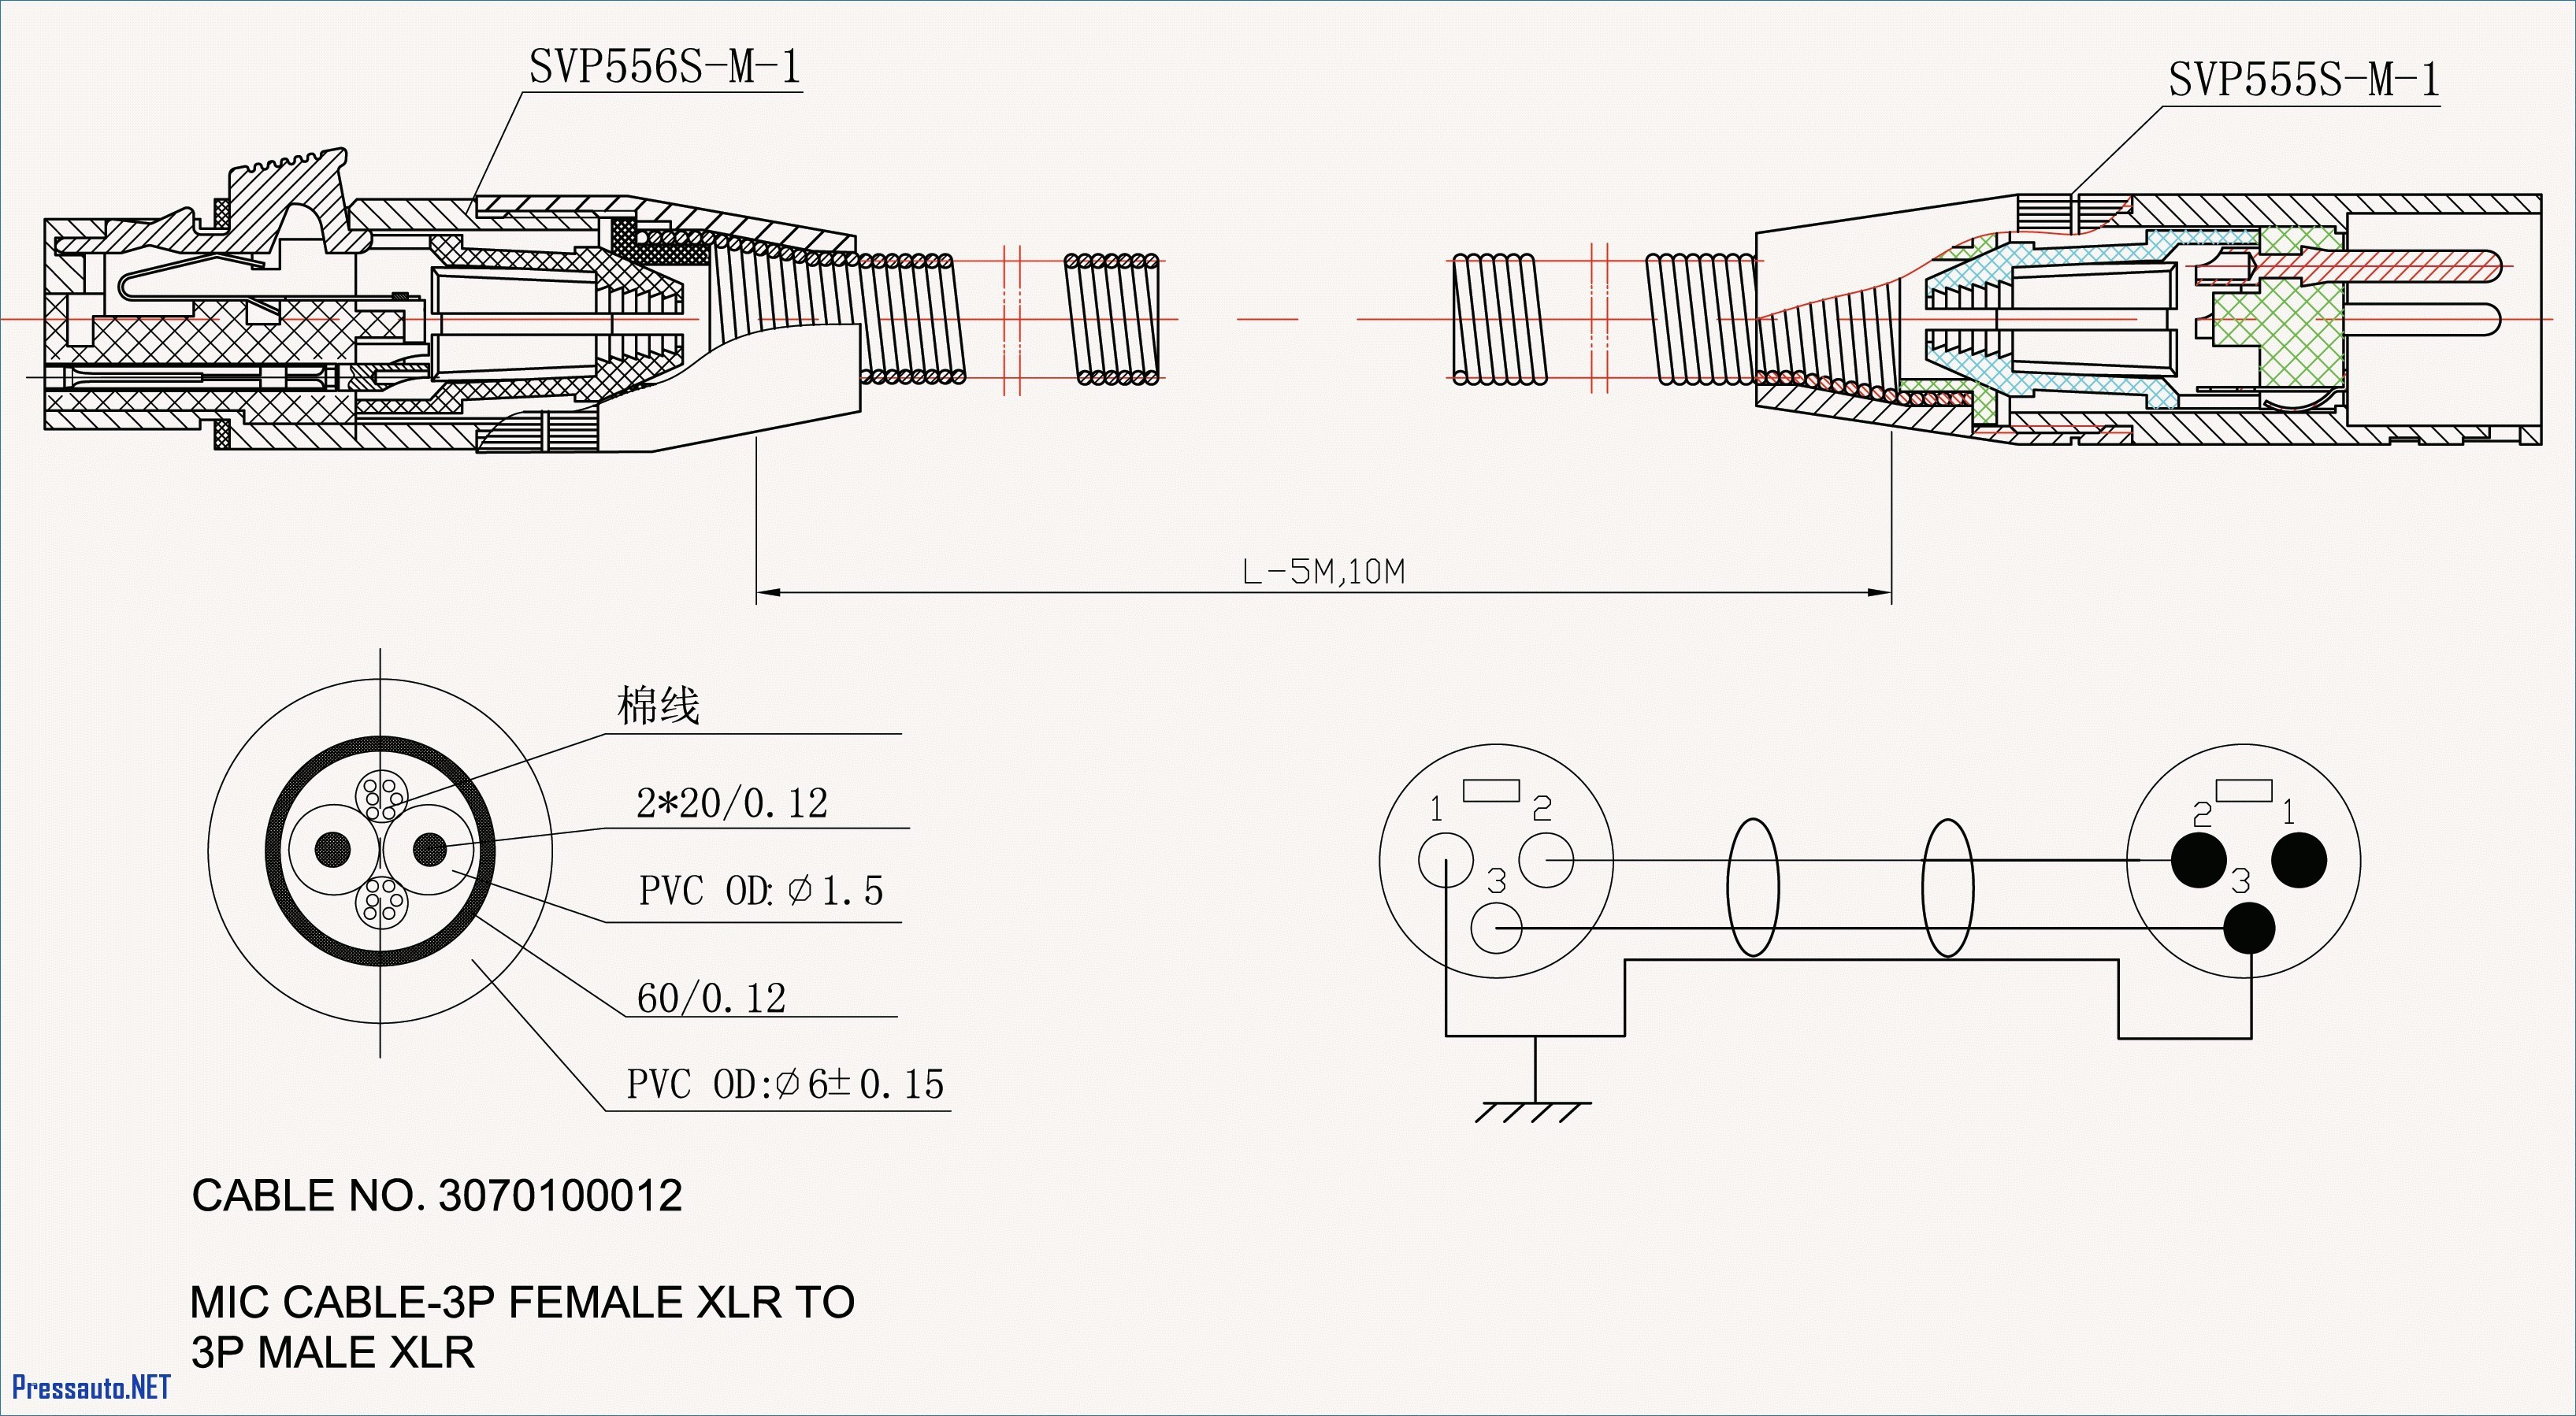 2004 ford f150 parts diagram 2001 ford f150 parts diagram simple wiring  diagram of 2004 ford